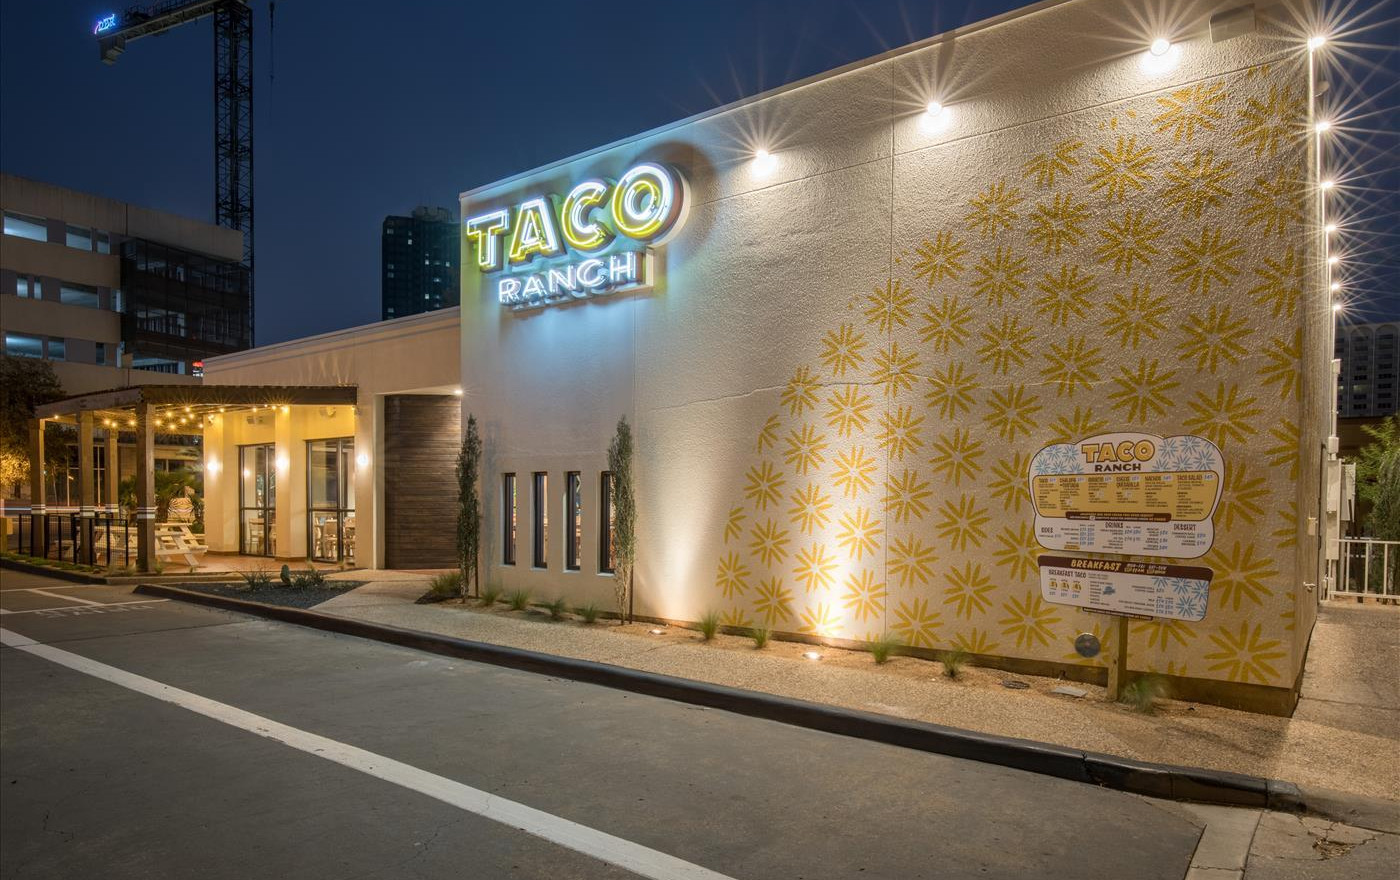 Taco Ranch MLK